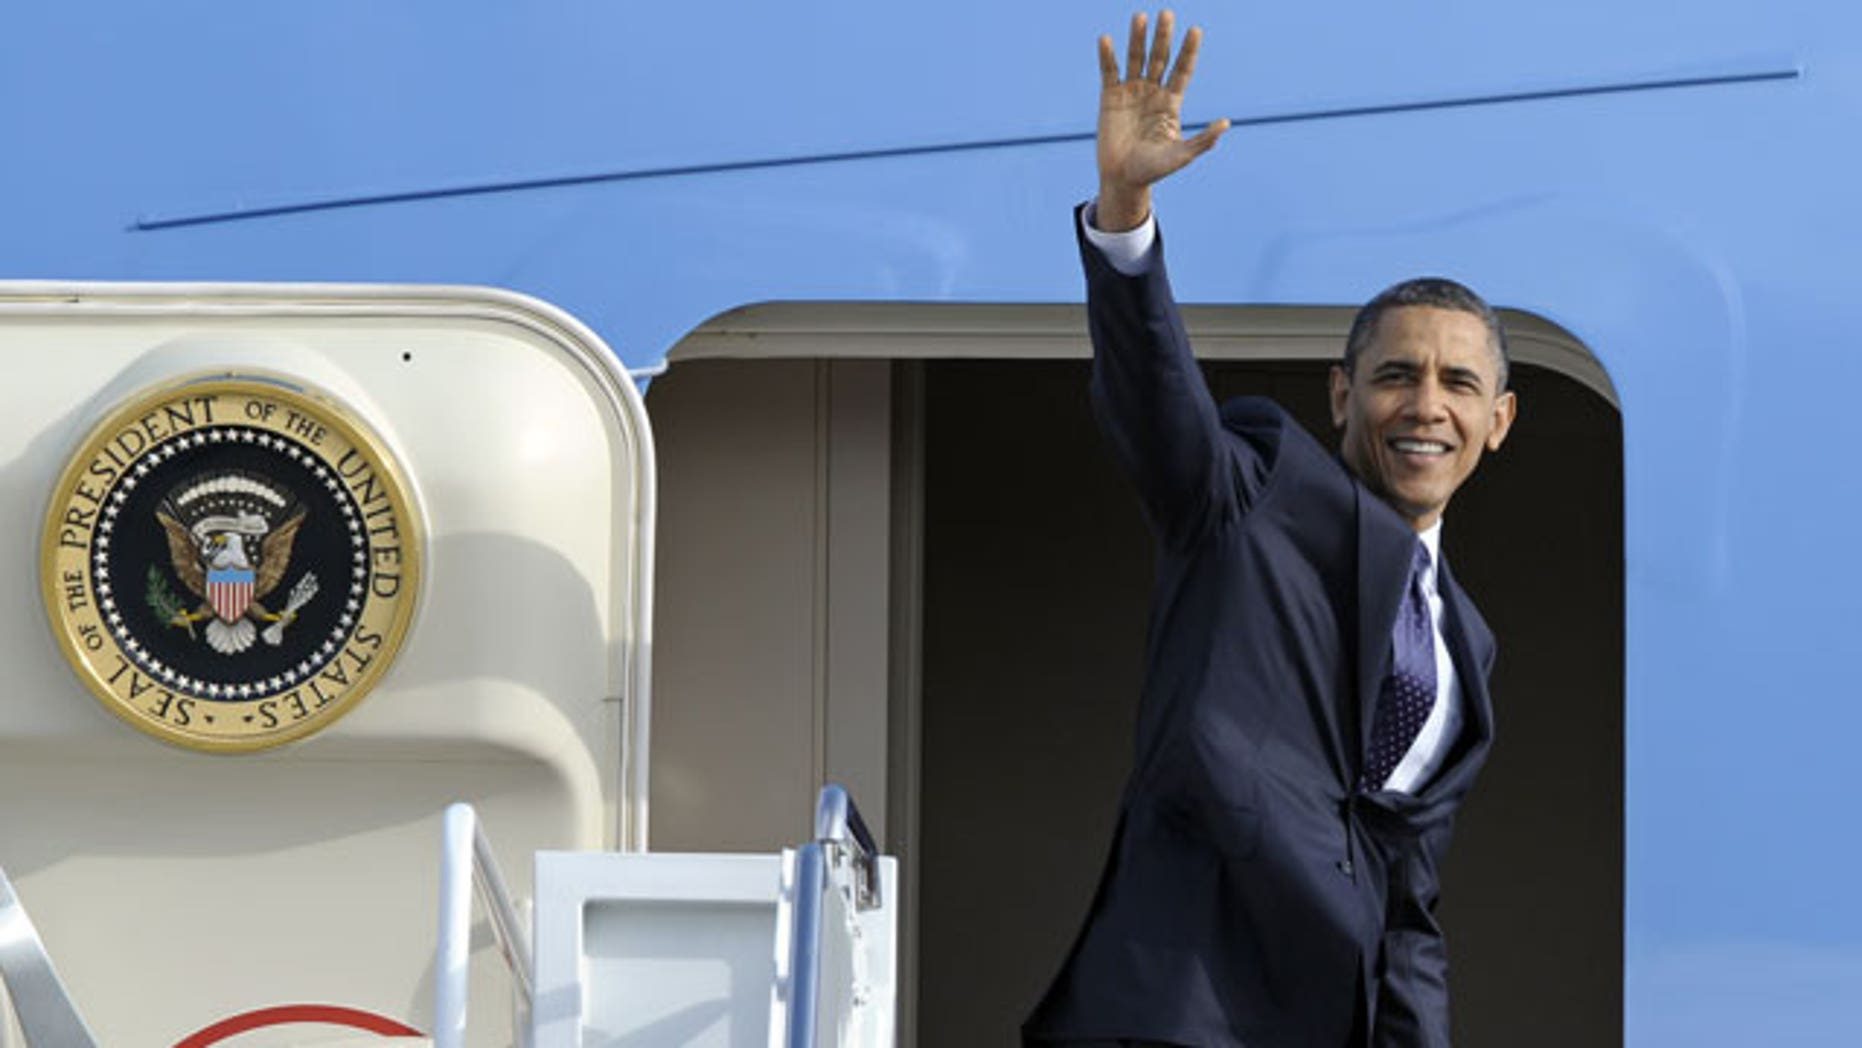 December 23, 2011: President Barack Obama waves as he boards Air Force One at Andrews Air Force Base, Md.